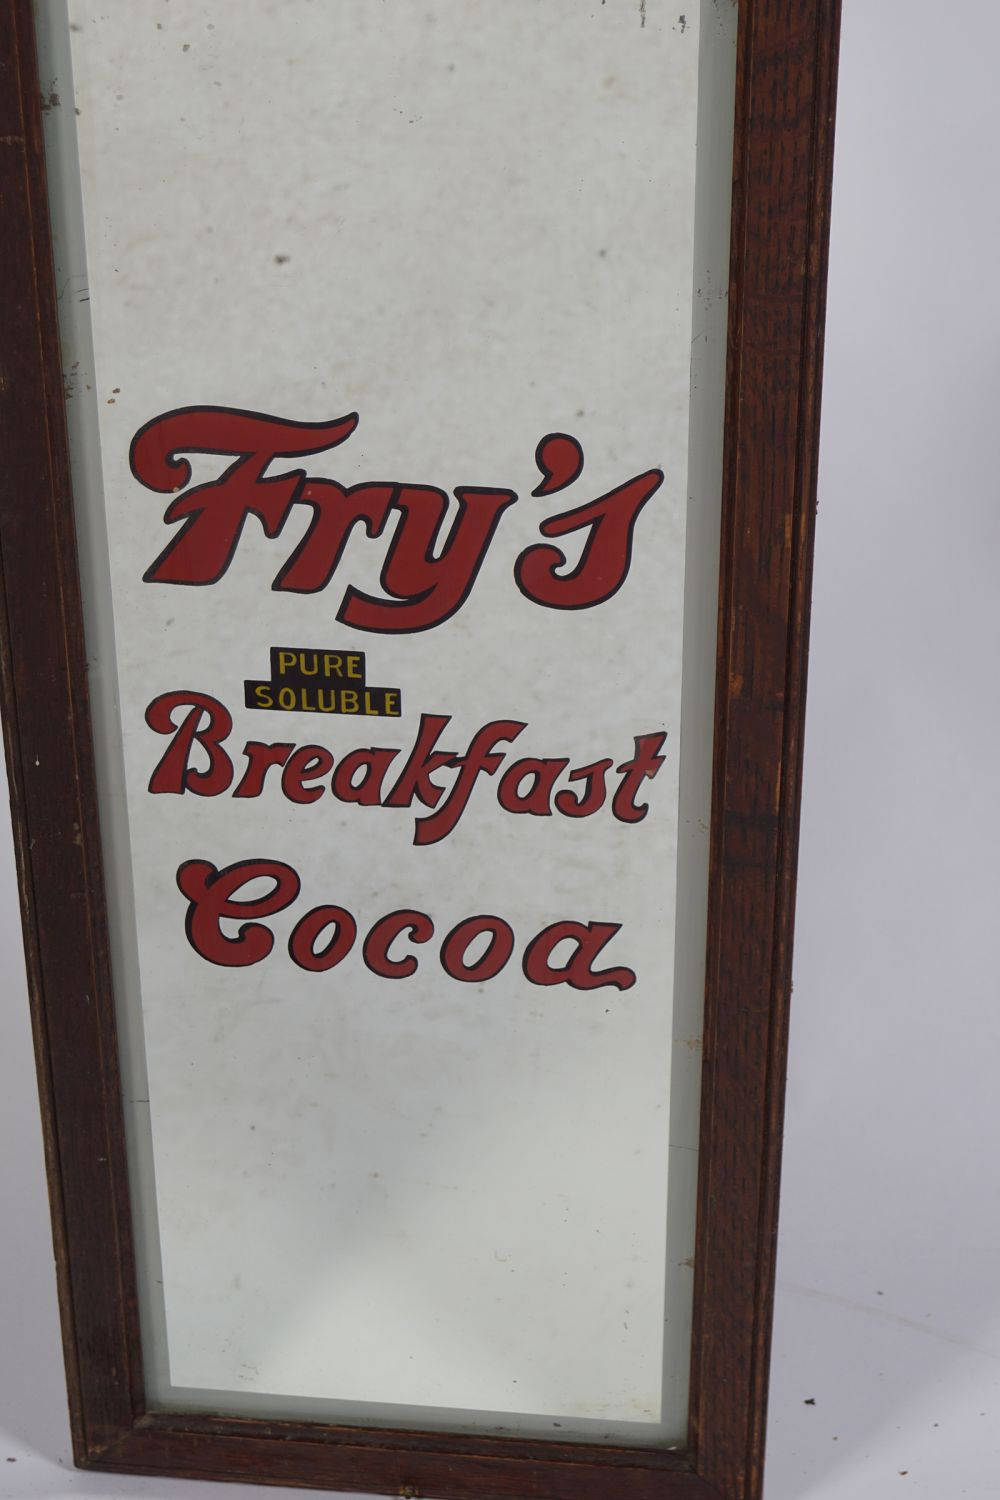 FRY'S PURE SOLUBLE BREAKFAST COCOA MIRROR - Image 2 of 2